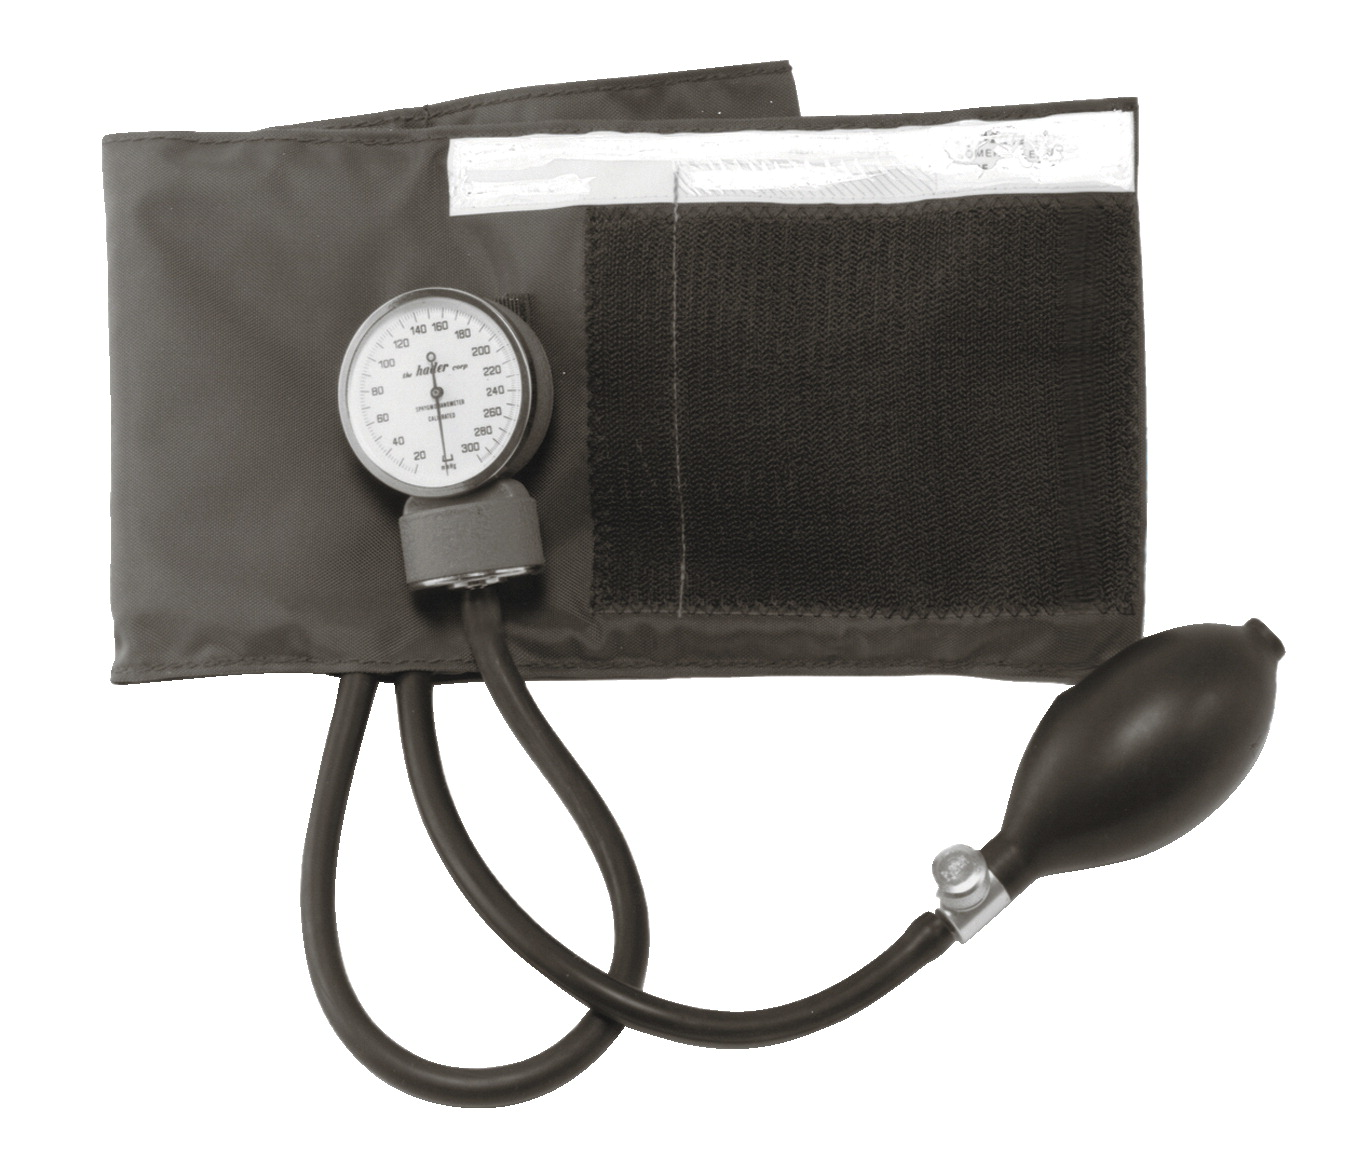 Baseline Pocket Sphygmomanometer, Adult Cuff